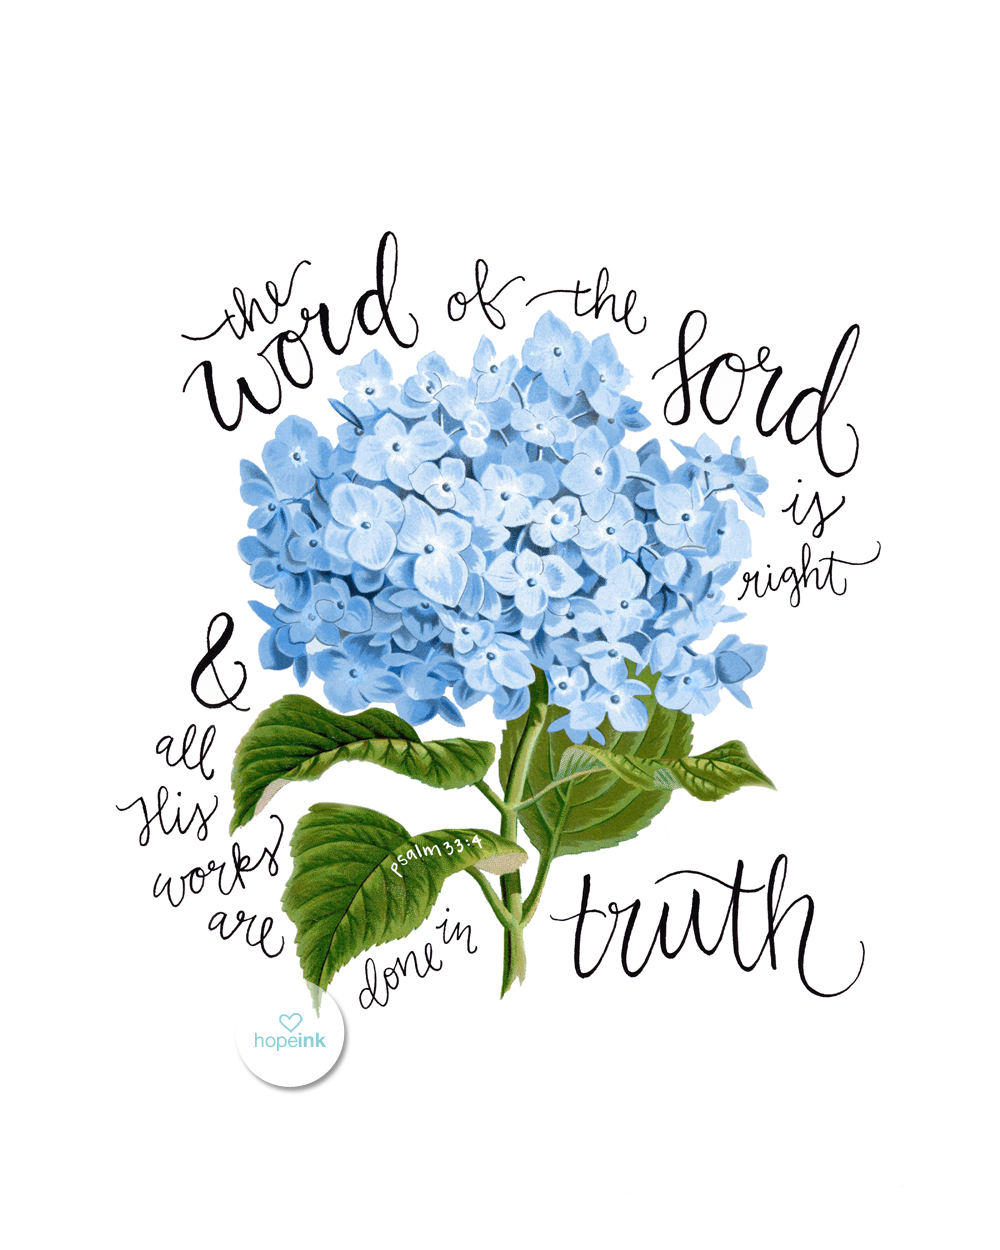 Scripture Art Hydrangeas Hope Ink.jpg